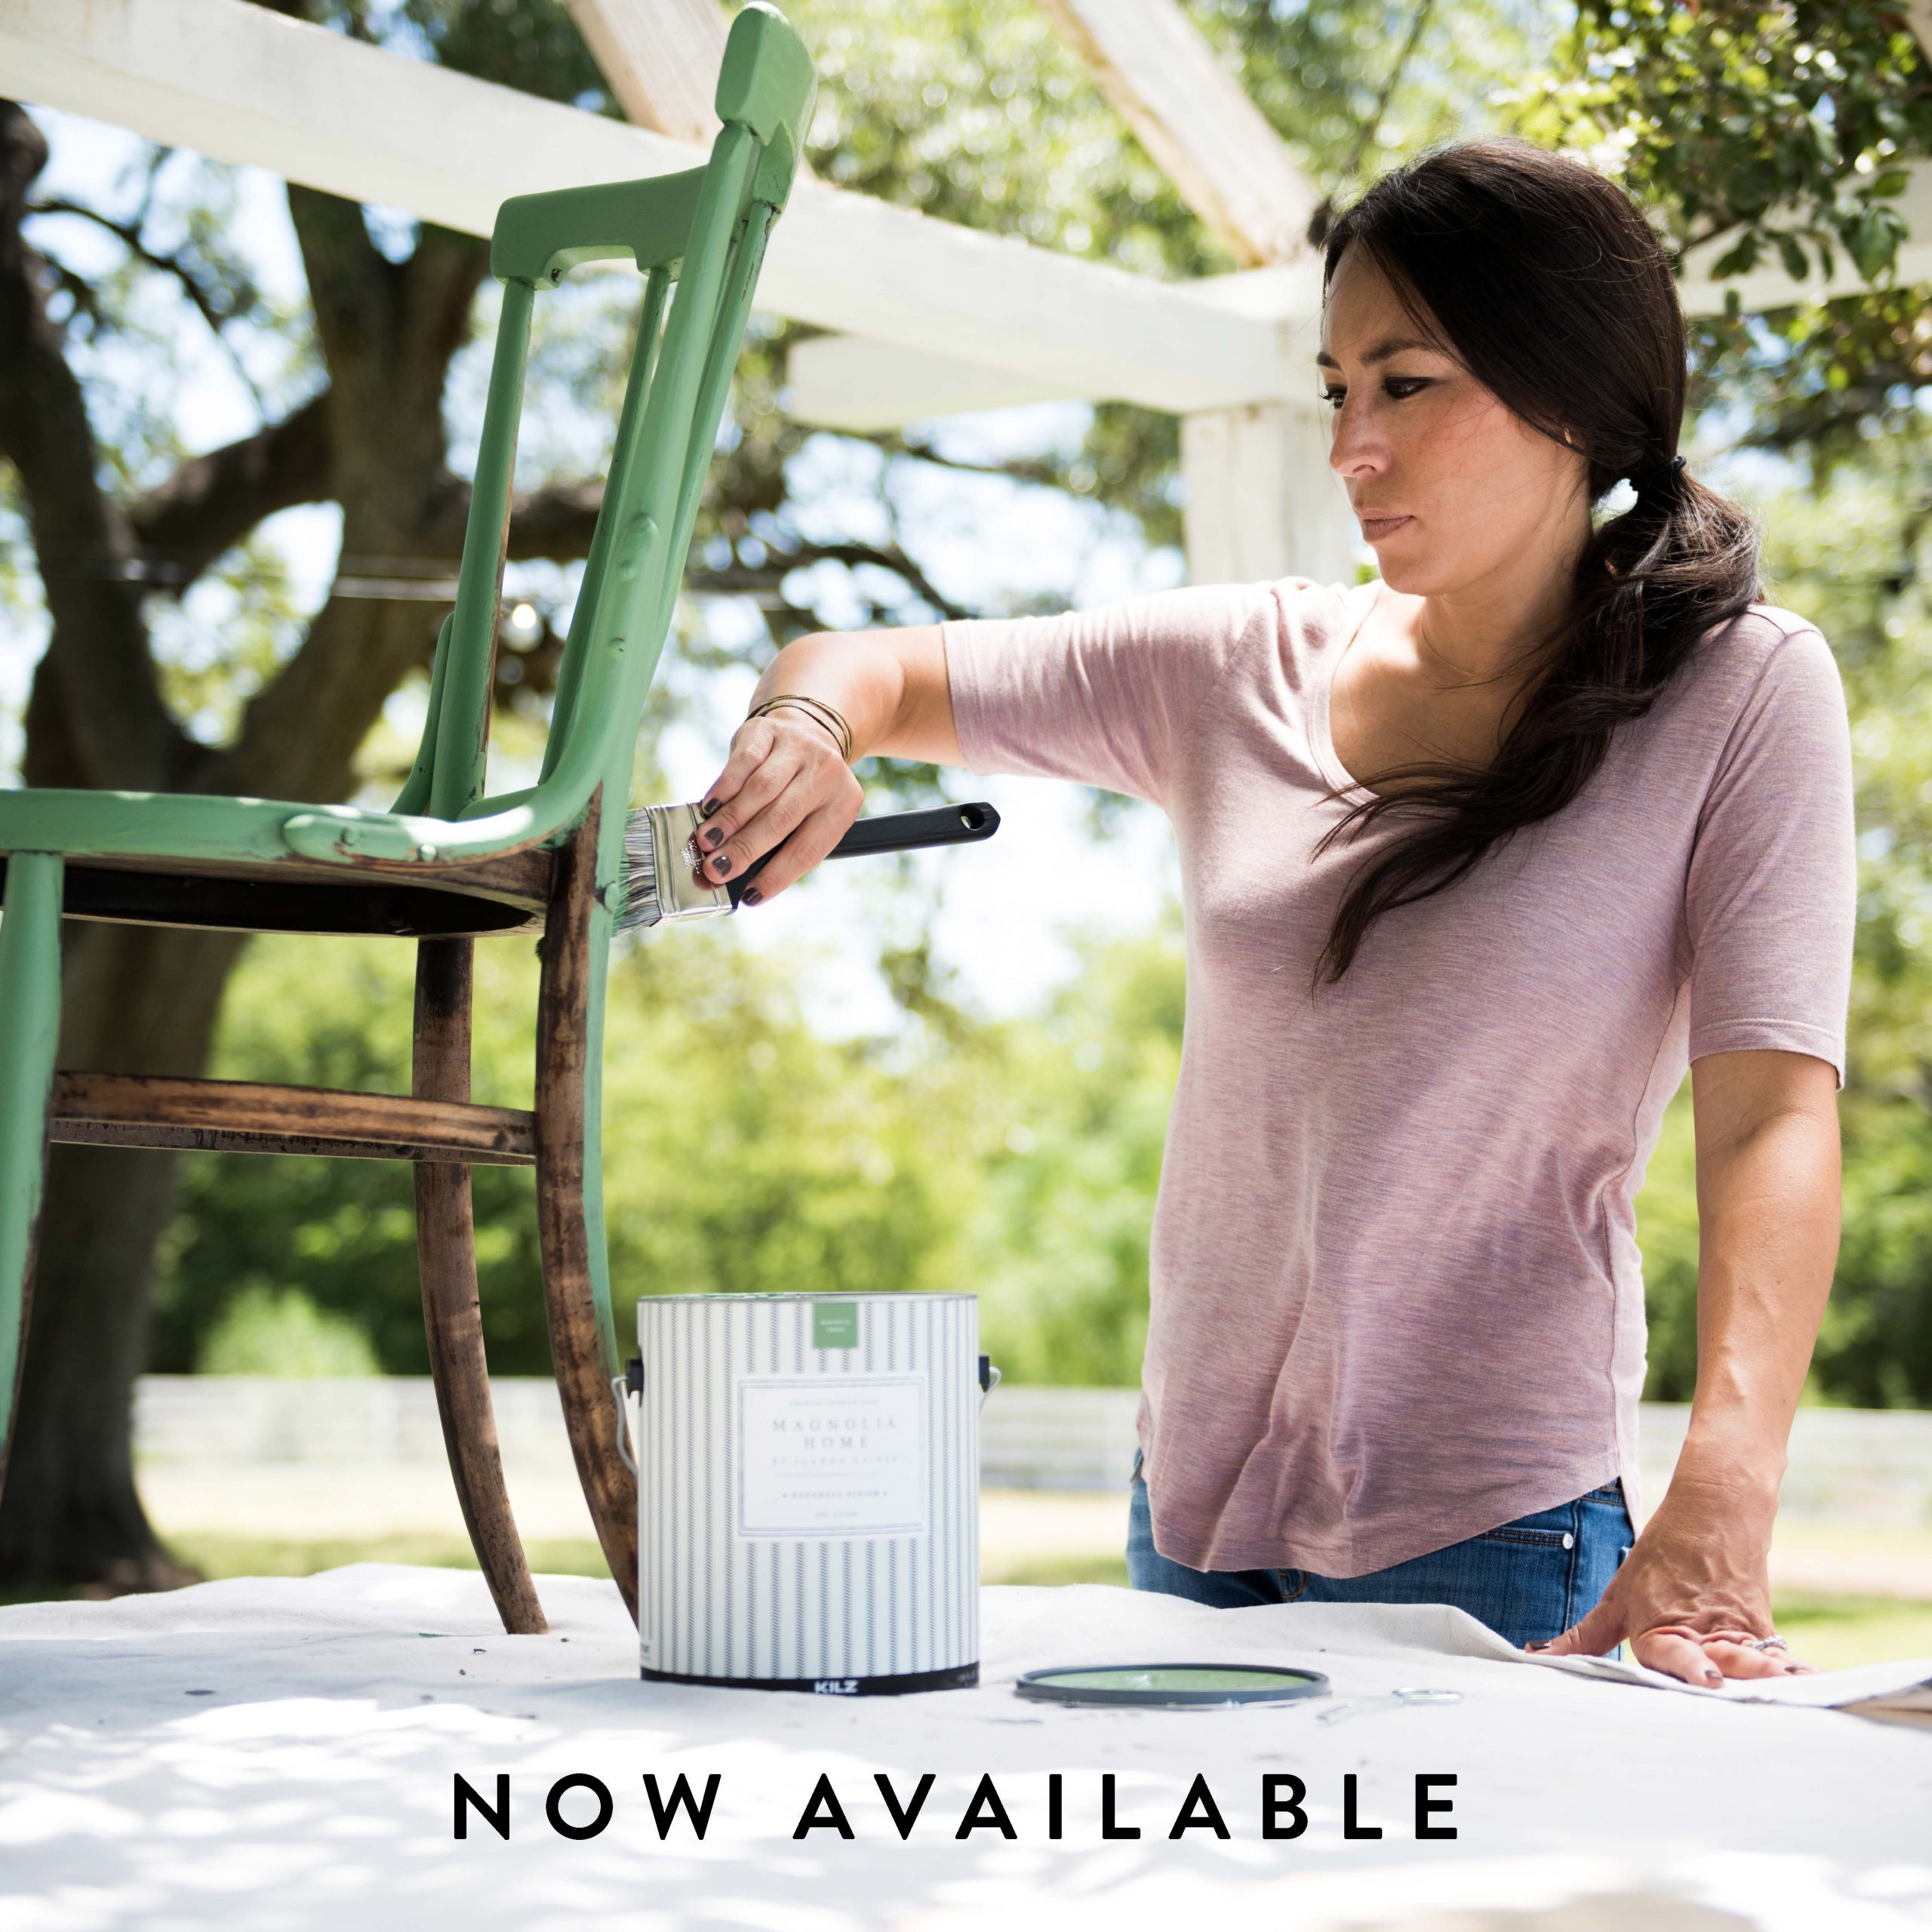 C MAGNOLIA SQUARE TEASER JOANNA PAINTING NOW AVAILABLE